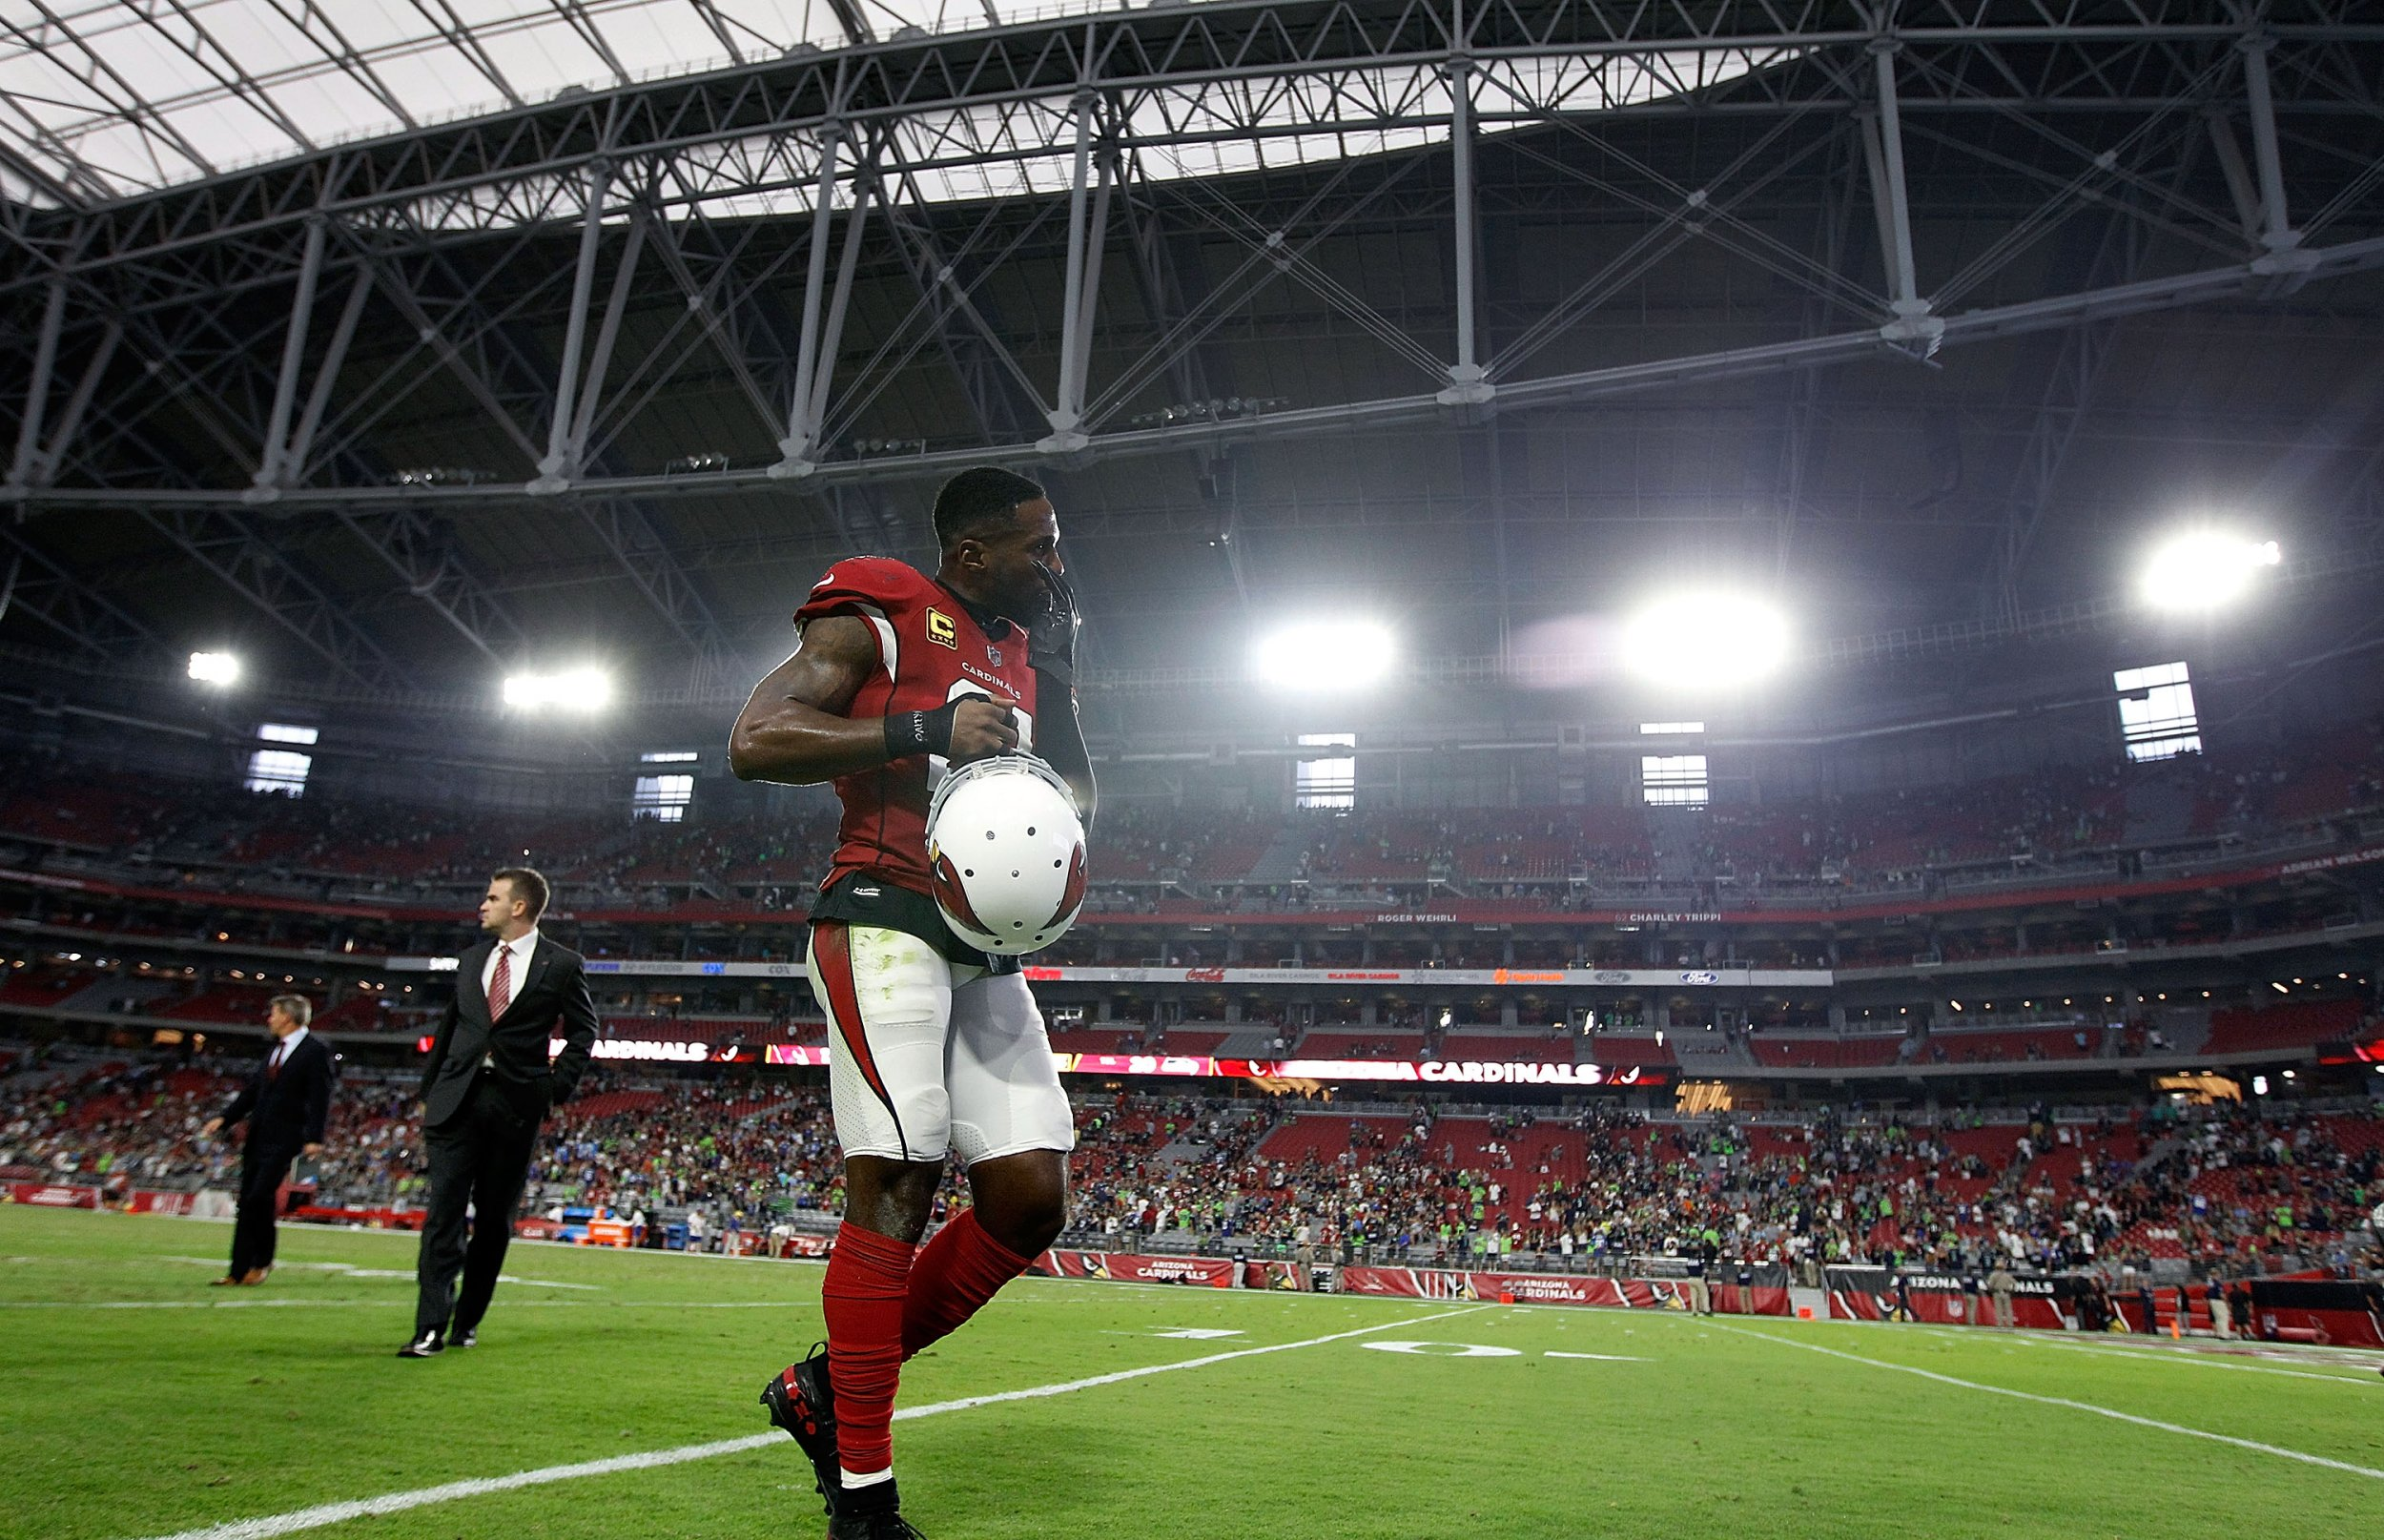 Arizona Cardinals CB Patrick Peterson